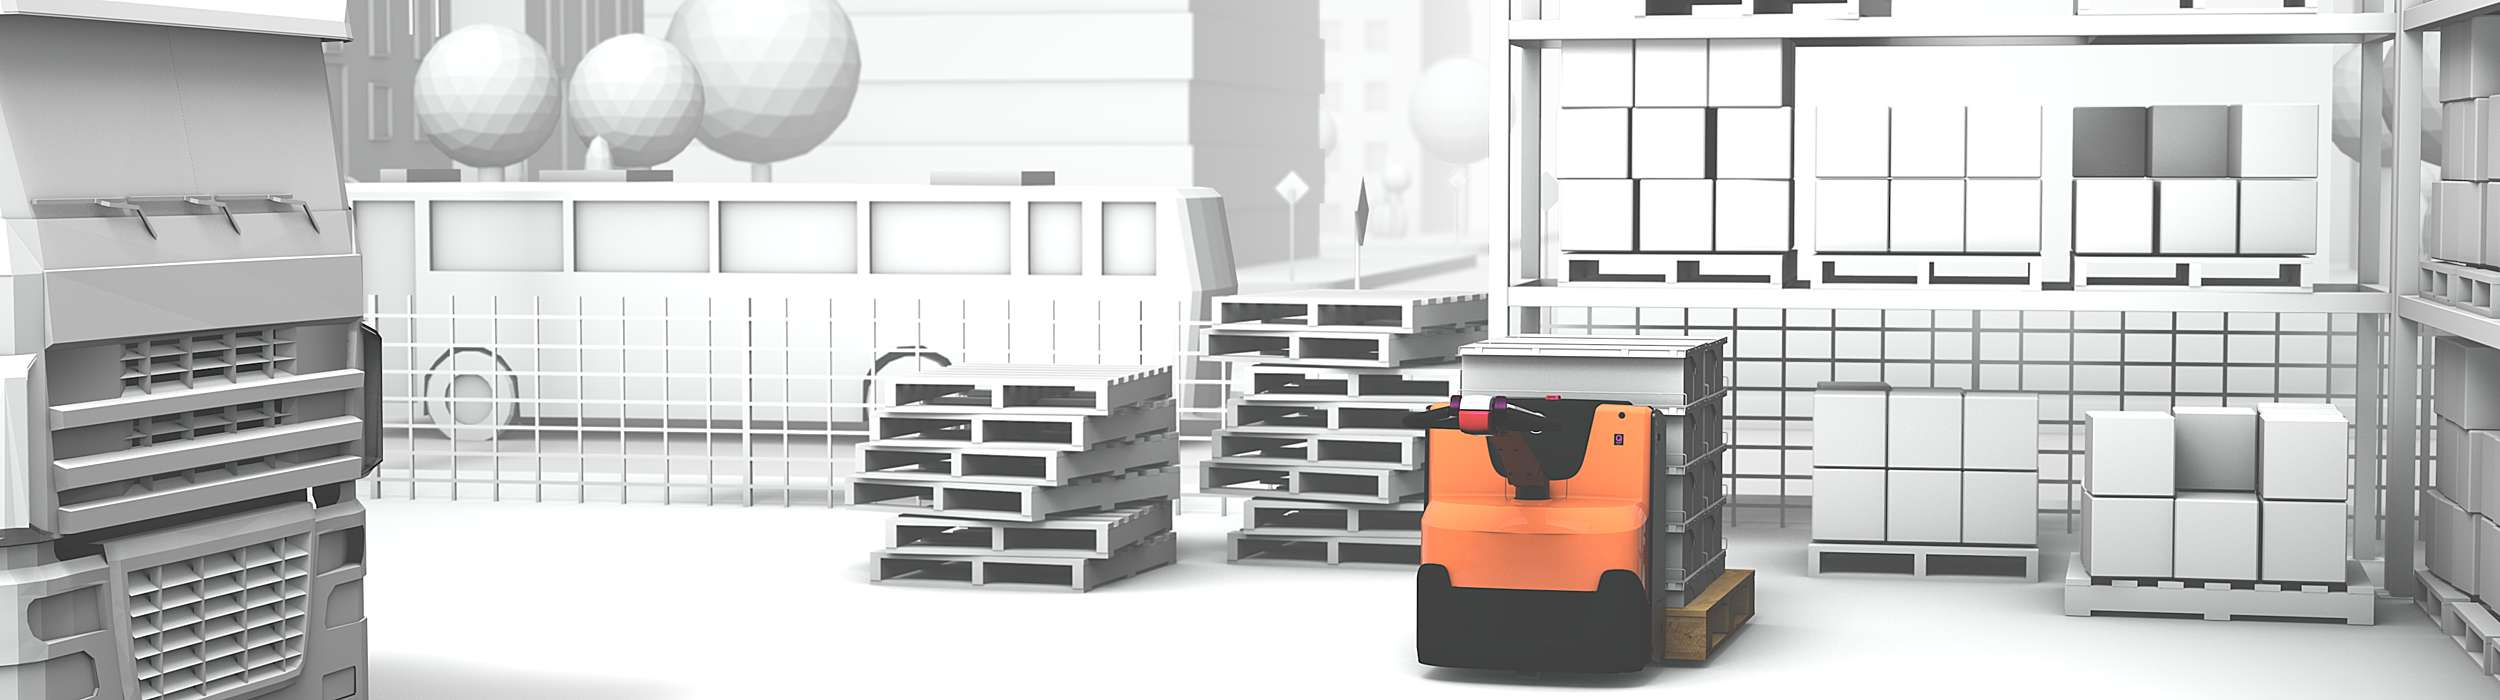 Illustration of silent truck in warehouse